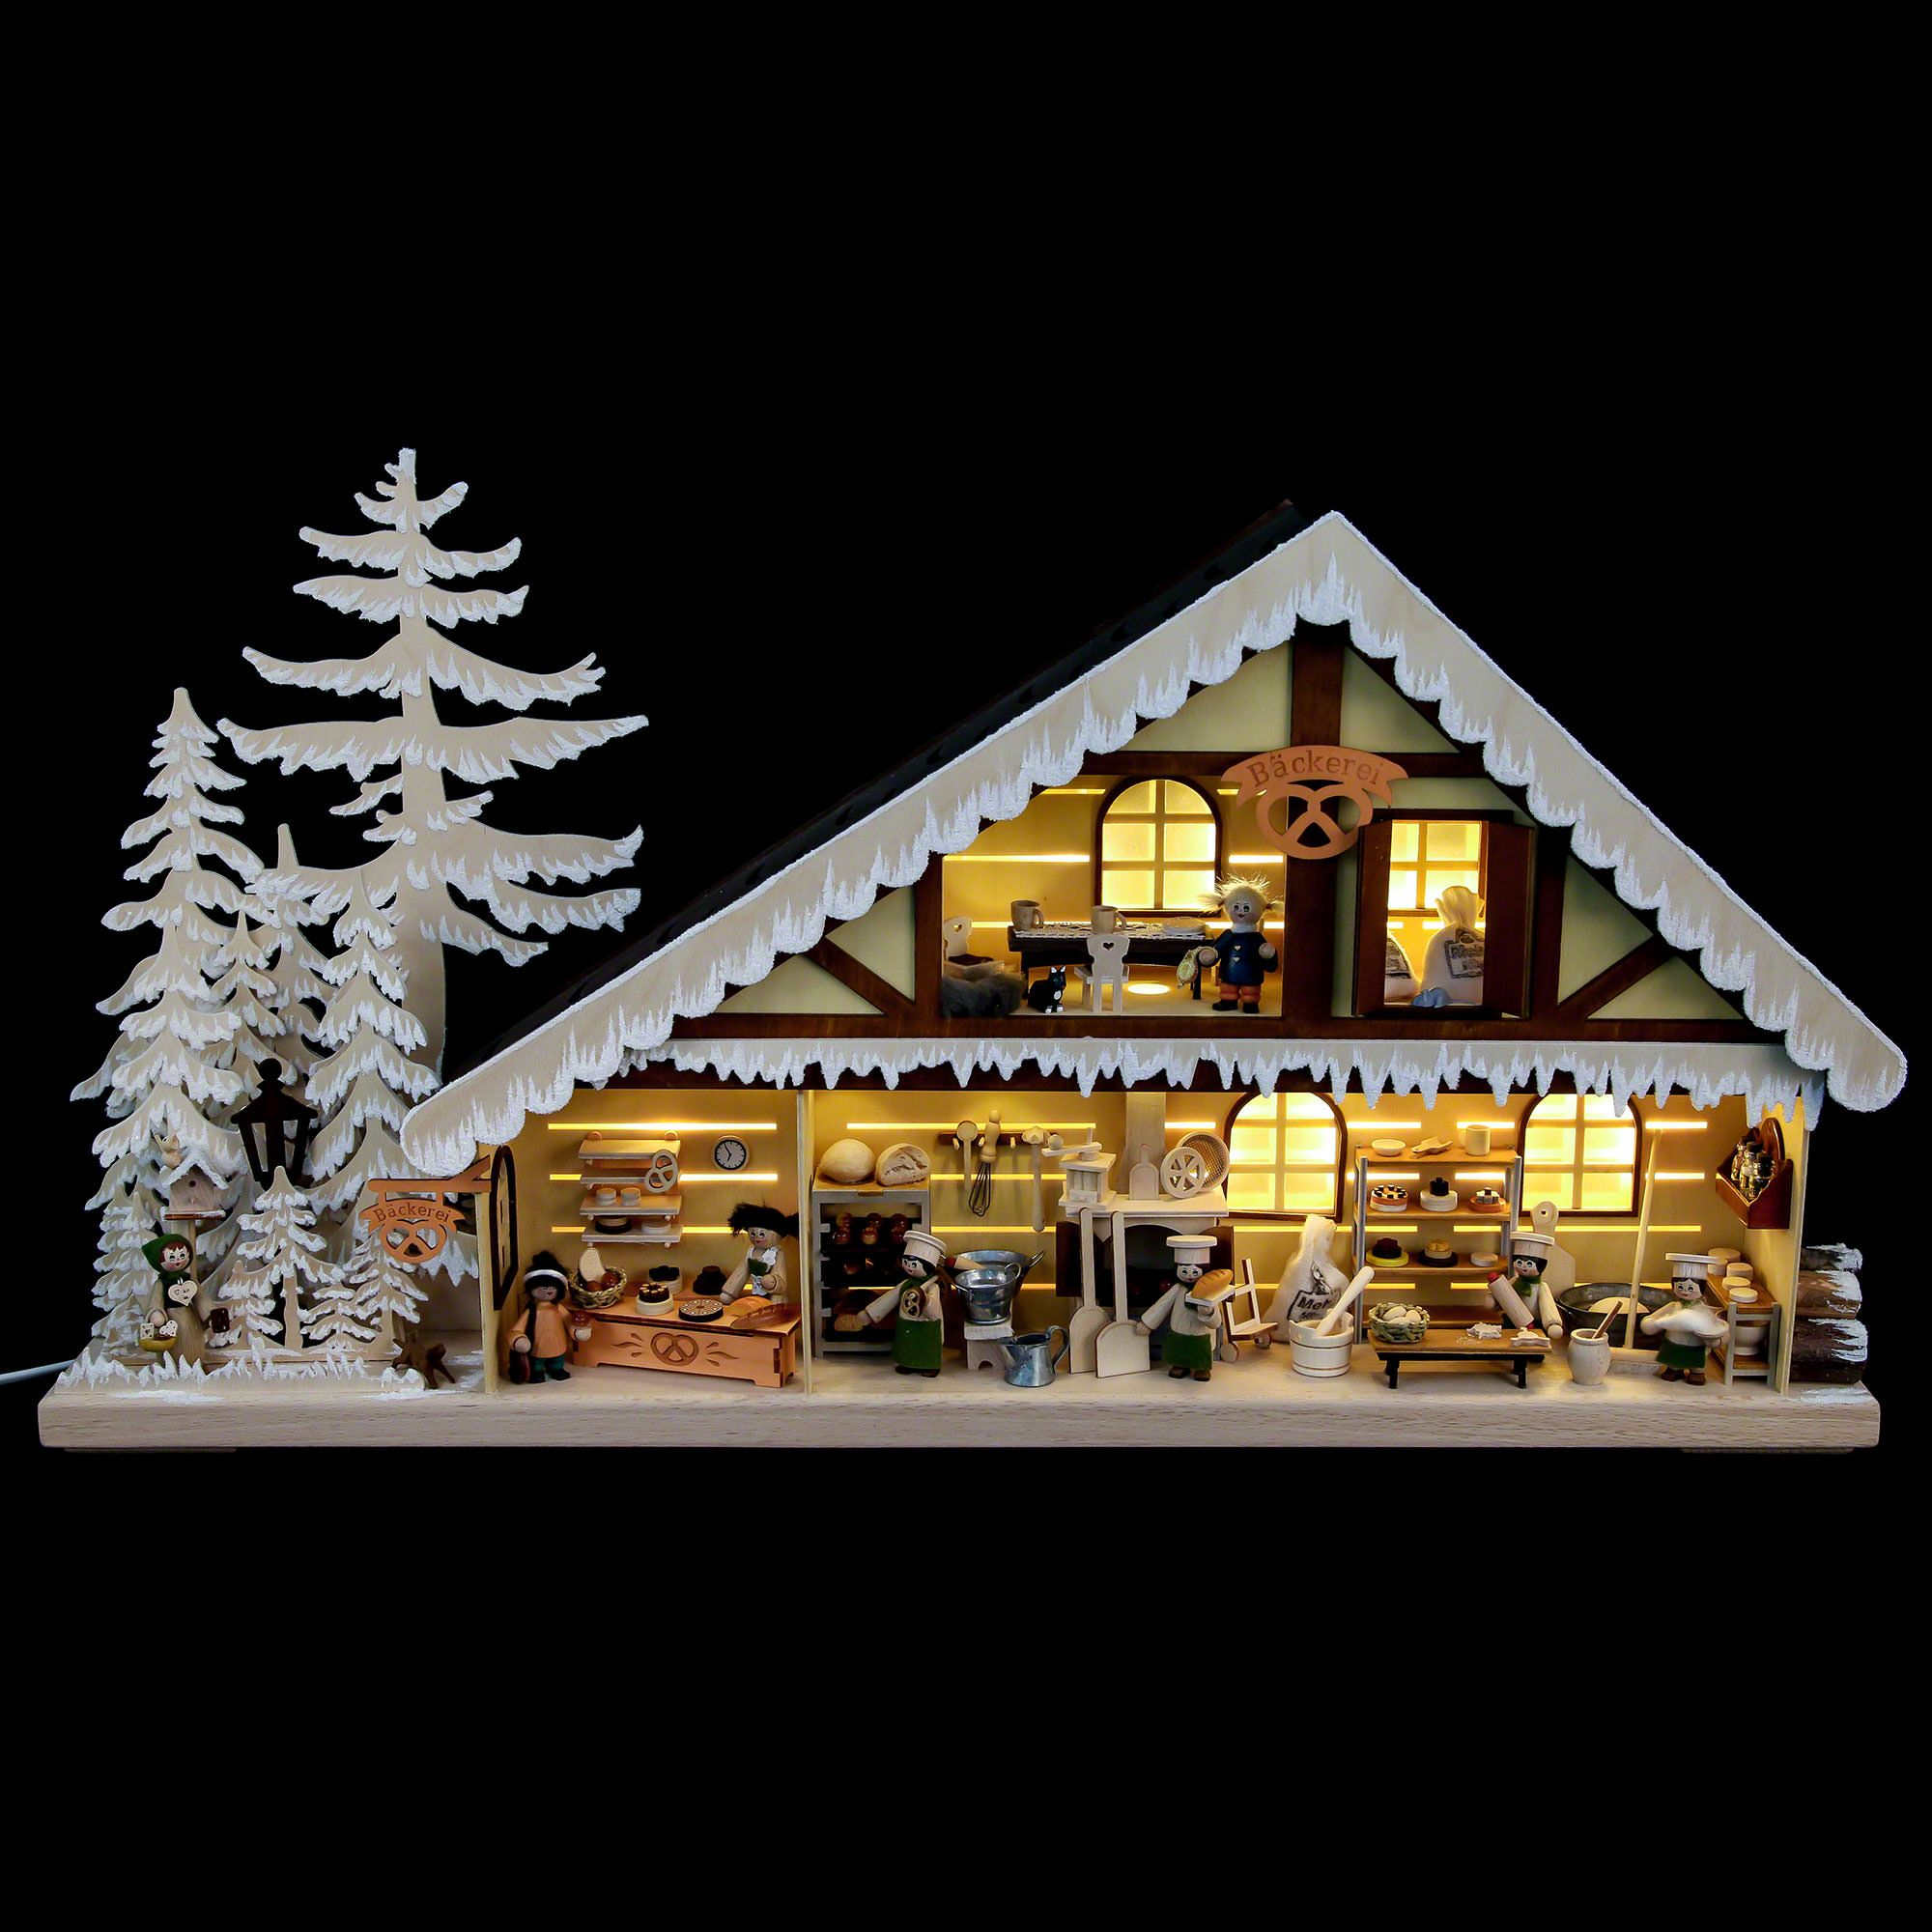 Lighted House Bakery with White Frost 70x38 cm / 28x15